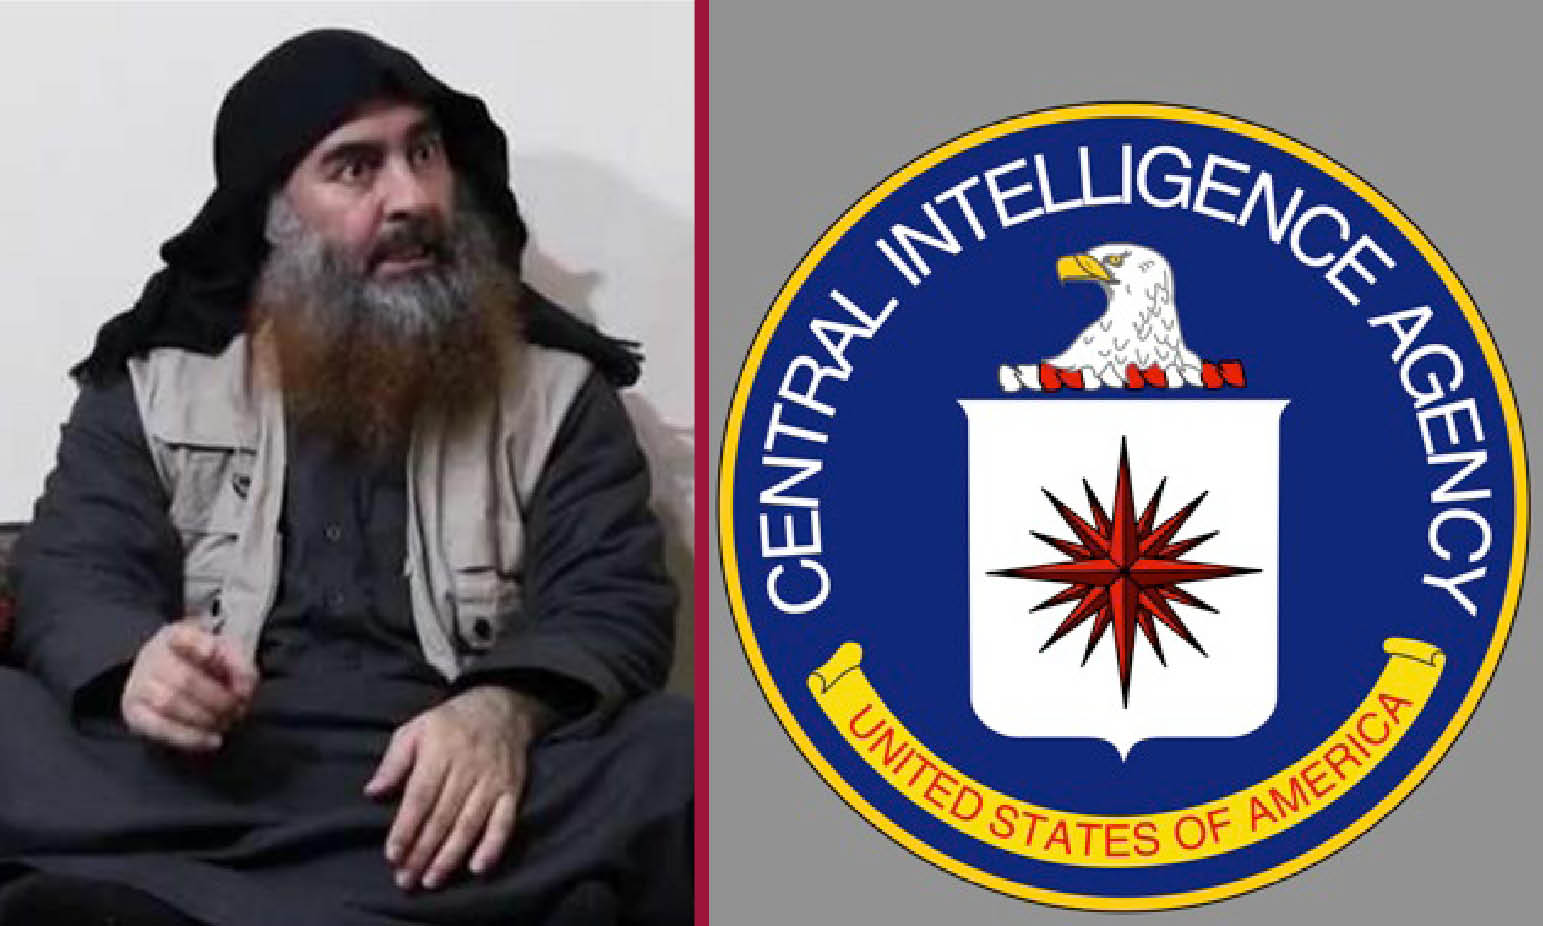 AL BAGHDADI: ISIS CALIPH AND MOSSAD-CIA AGENT HIDDEN BY US